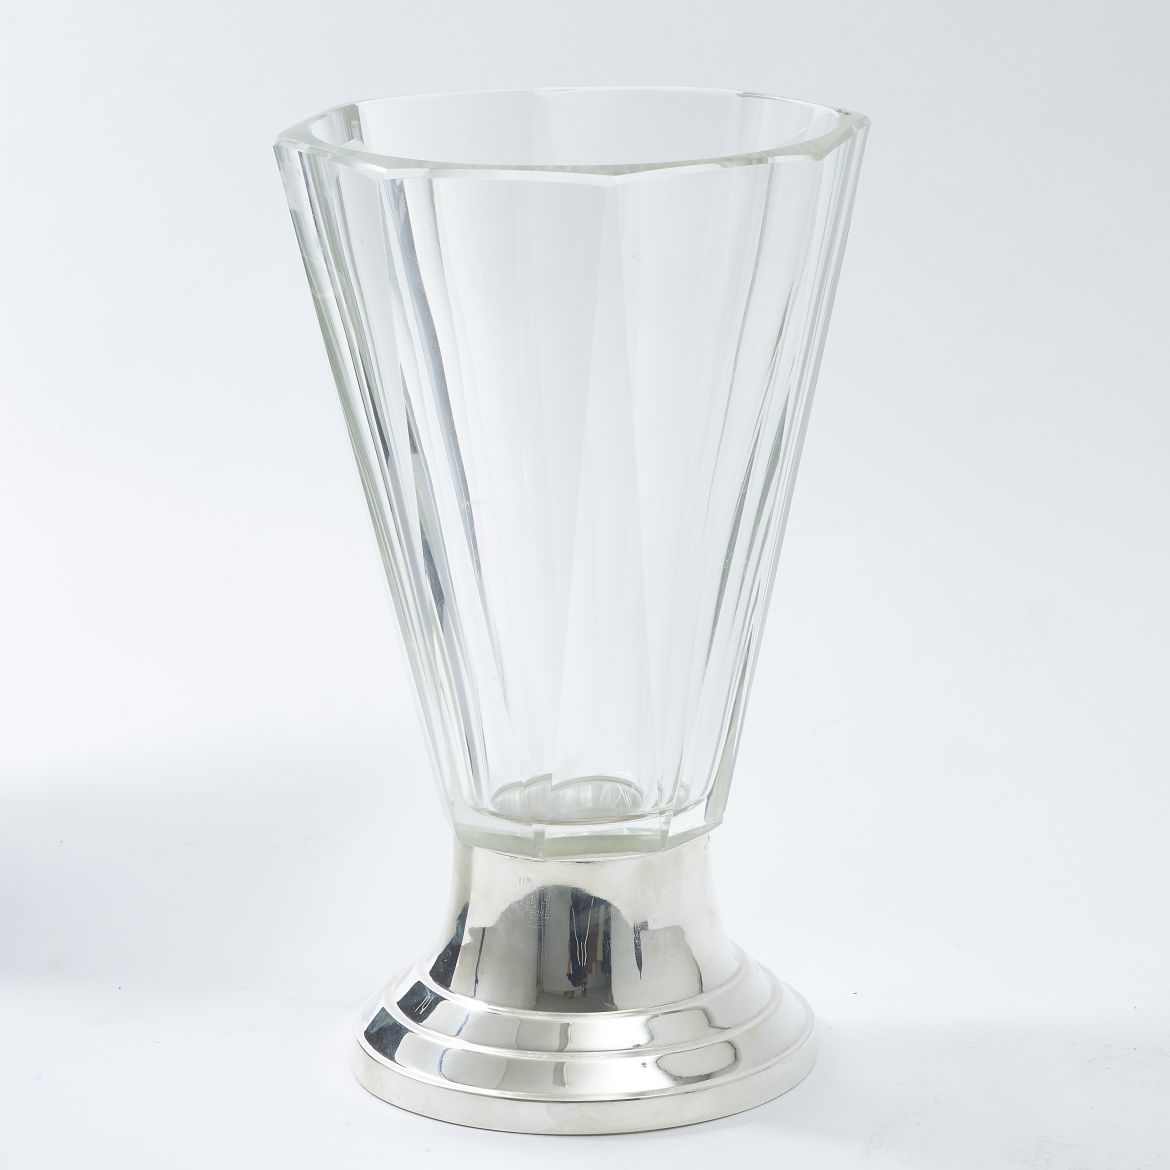 Octagonal Cut Glass Vase